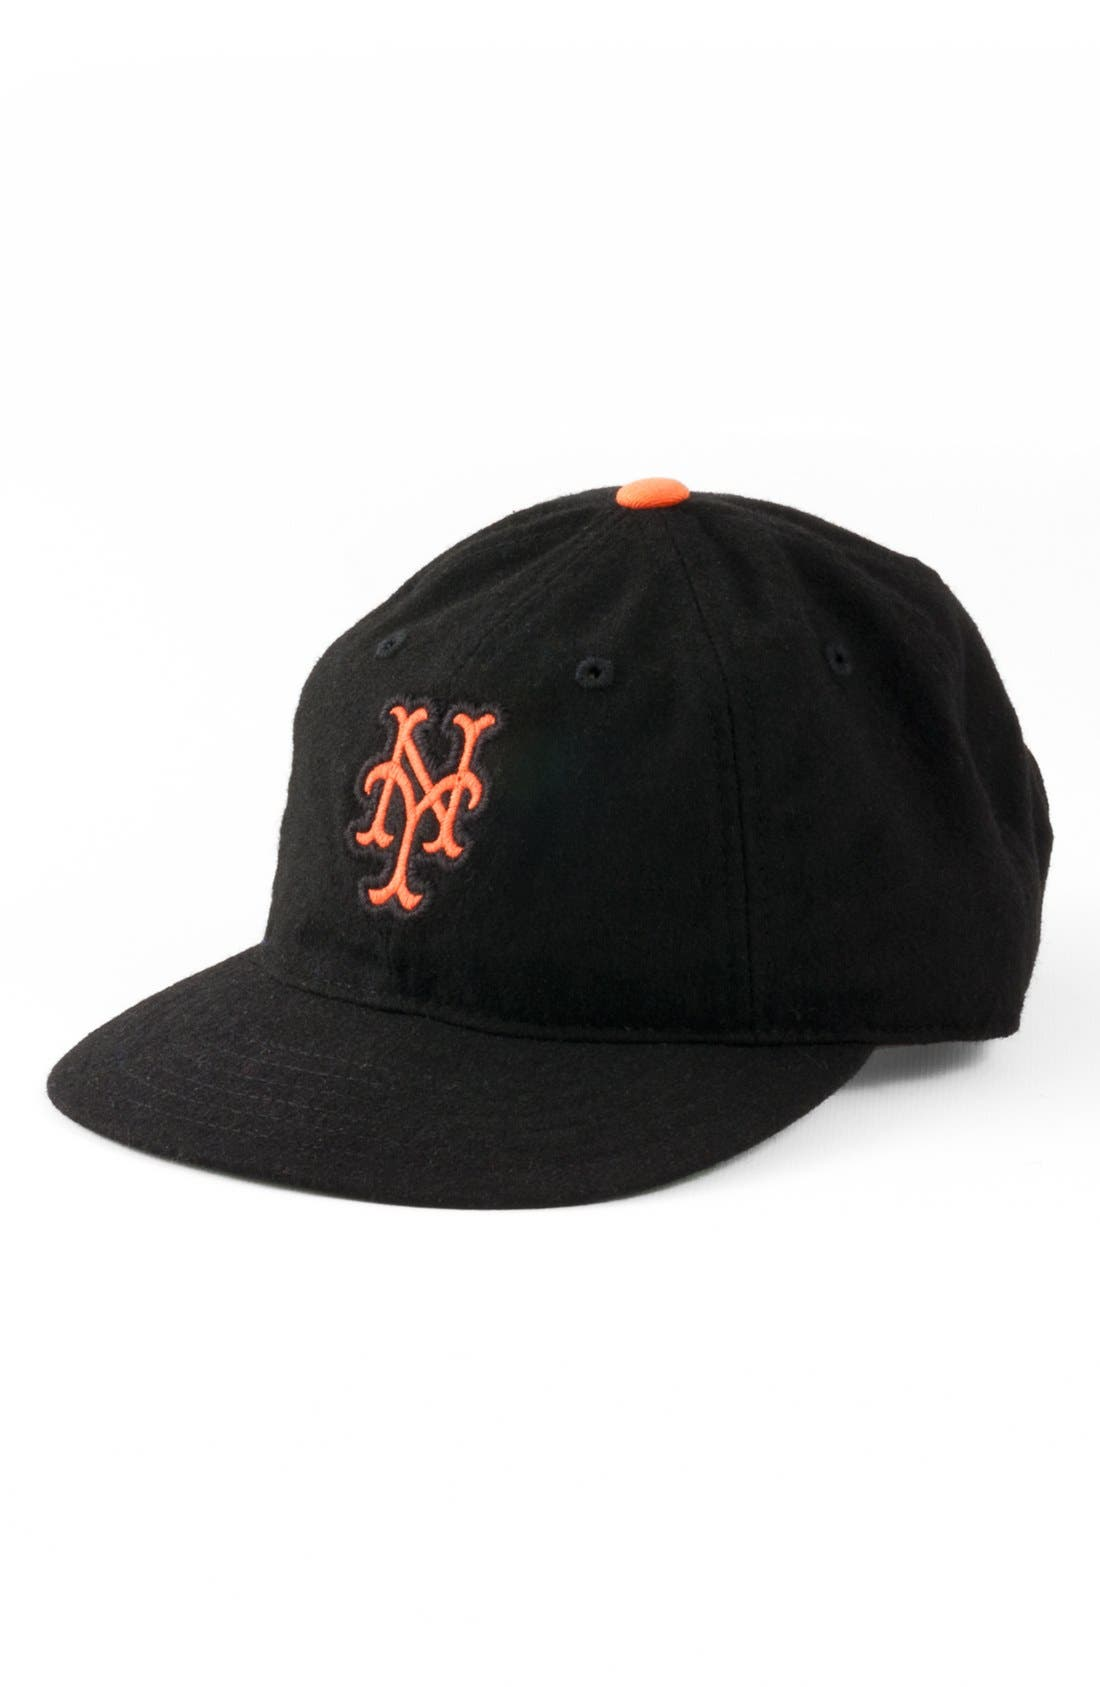 Alternate Image 1 Selected - American Needle 'New York Giants - Statesman' Baseball Cap